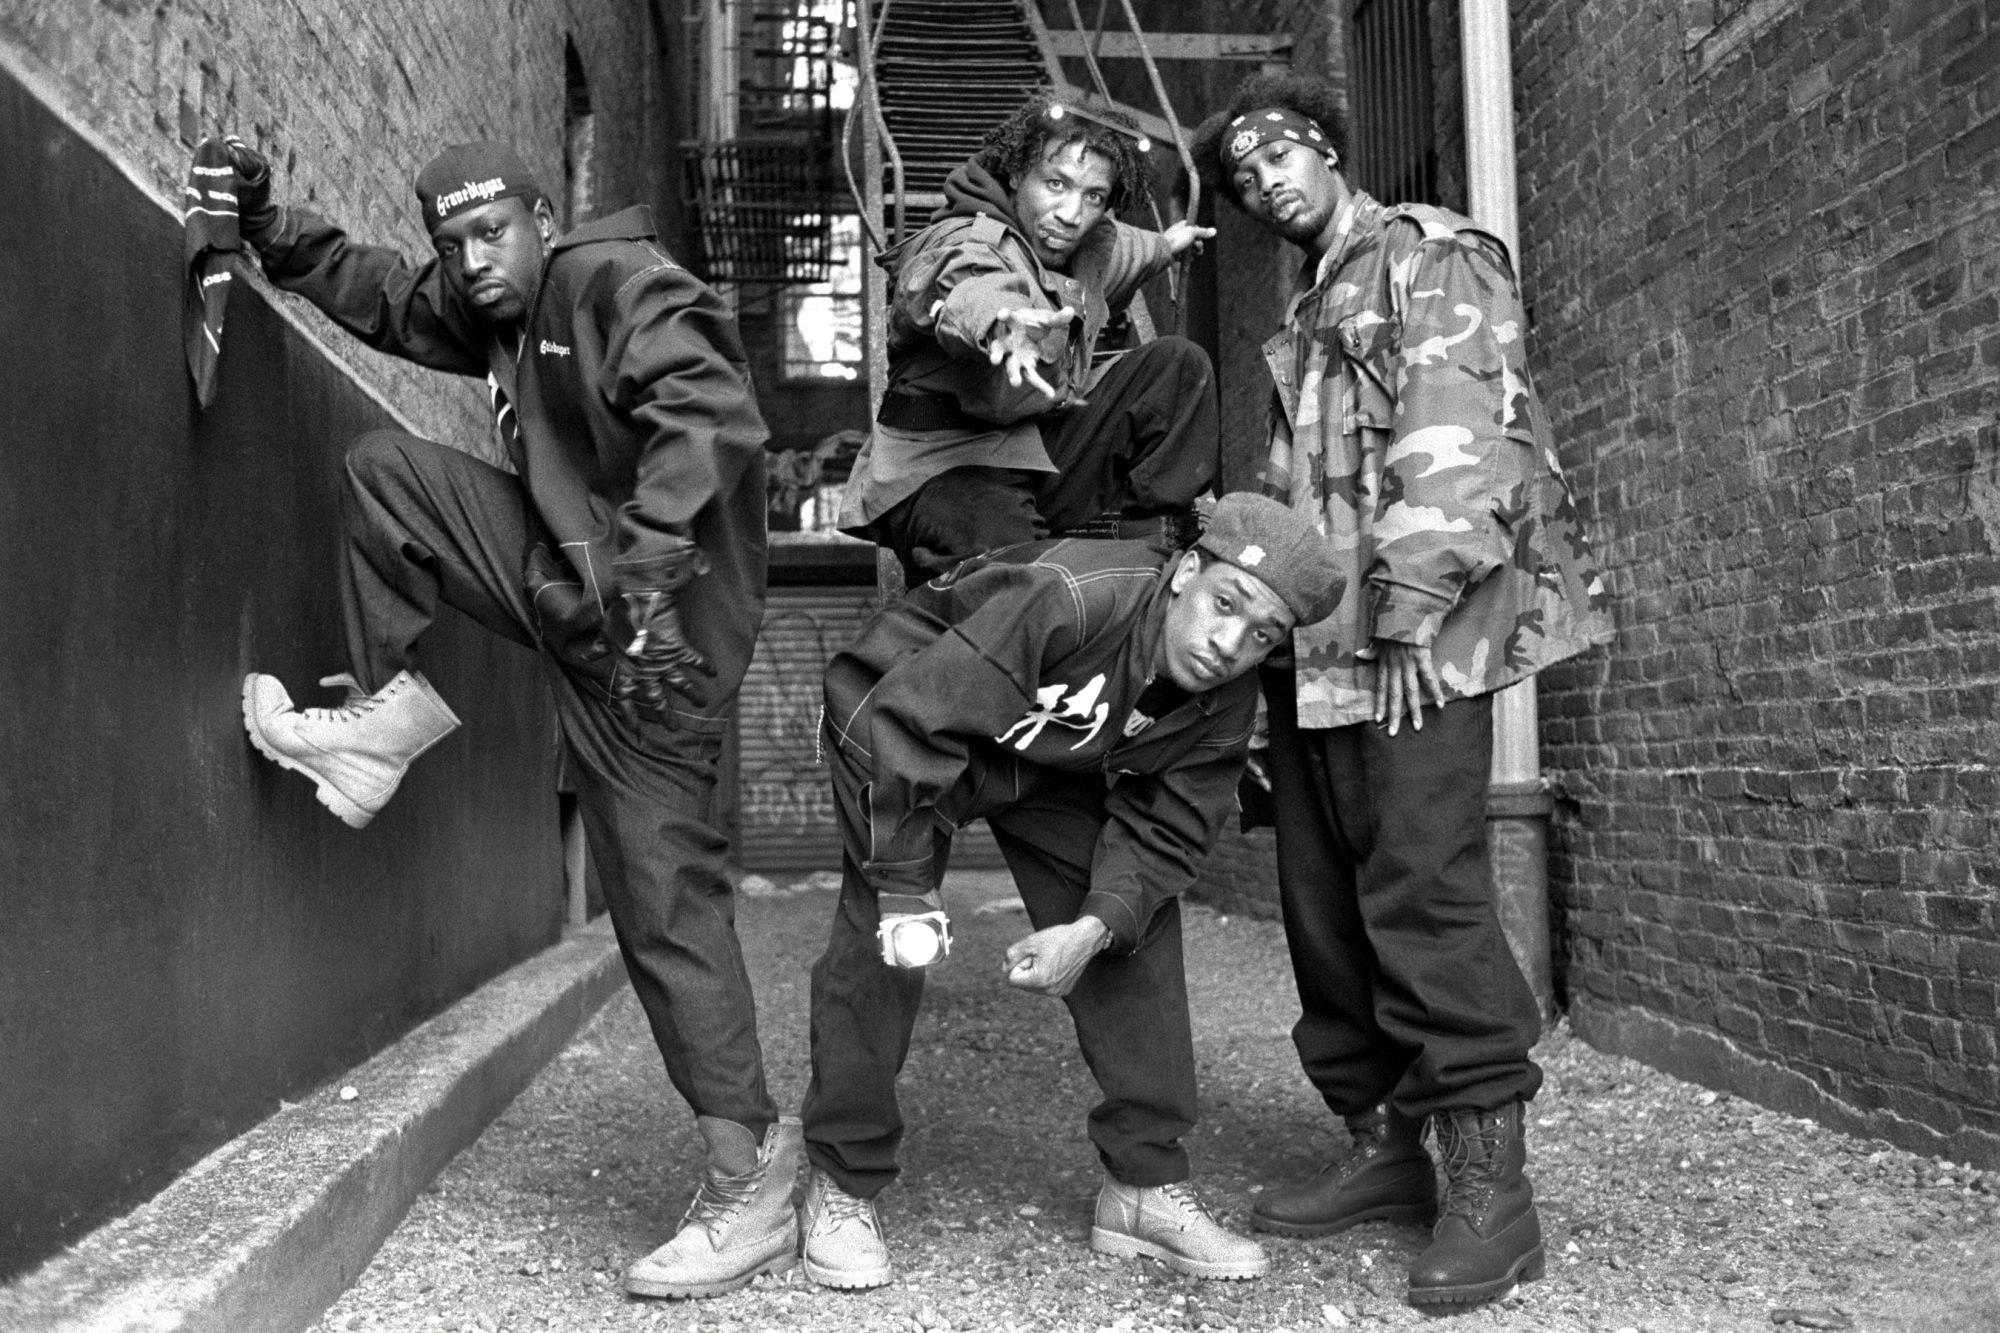 Group portrait of The Gravediggaz in Tribeca, New York City on 14 May 1994. L-R: The Gatekeeper (Frukwan), The Grym Reaper (Poetic), The Undertaker (Prince Paul) and The Rzarector (RZA). (Photo by David Corio/Redferns)